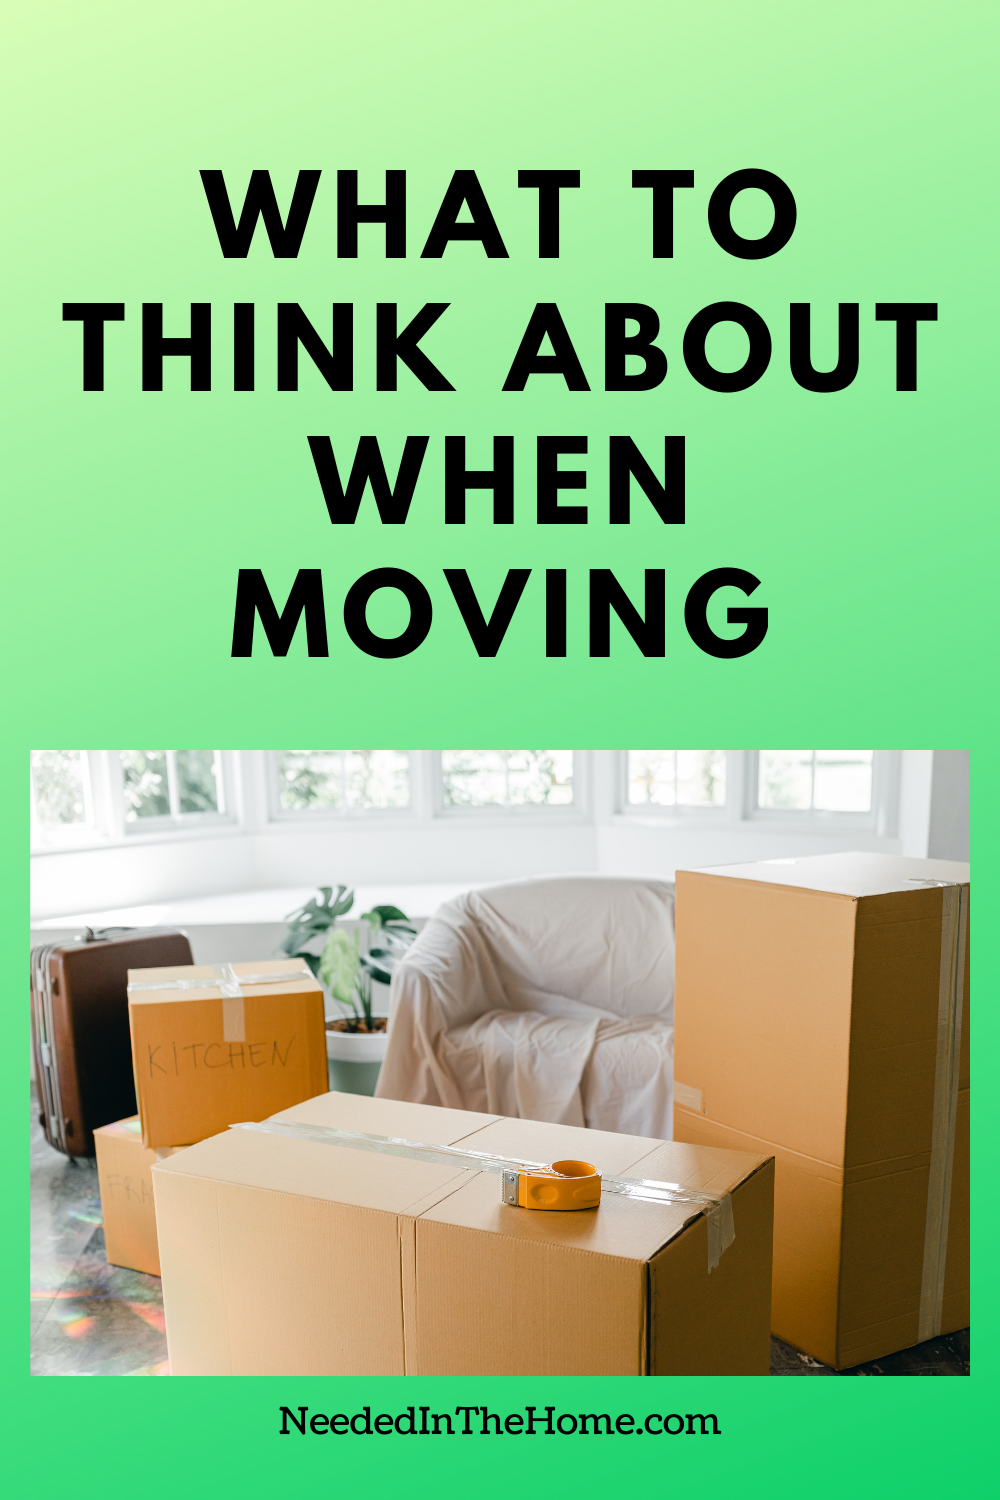 pinterest-pin-description what to think about when moving packed and labeled moving boxes covered chair plant neededinthehome